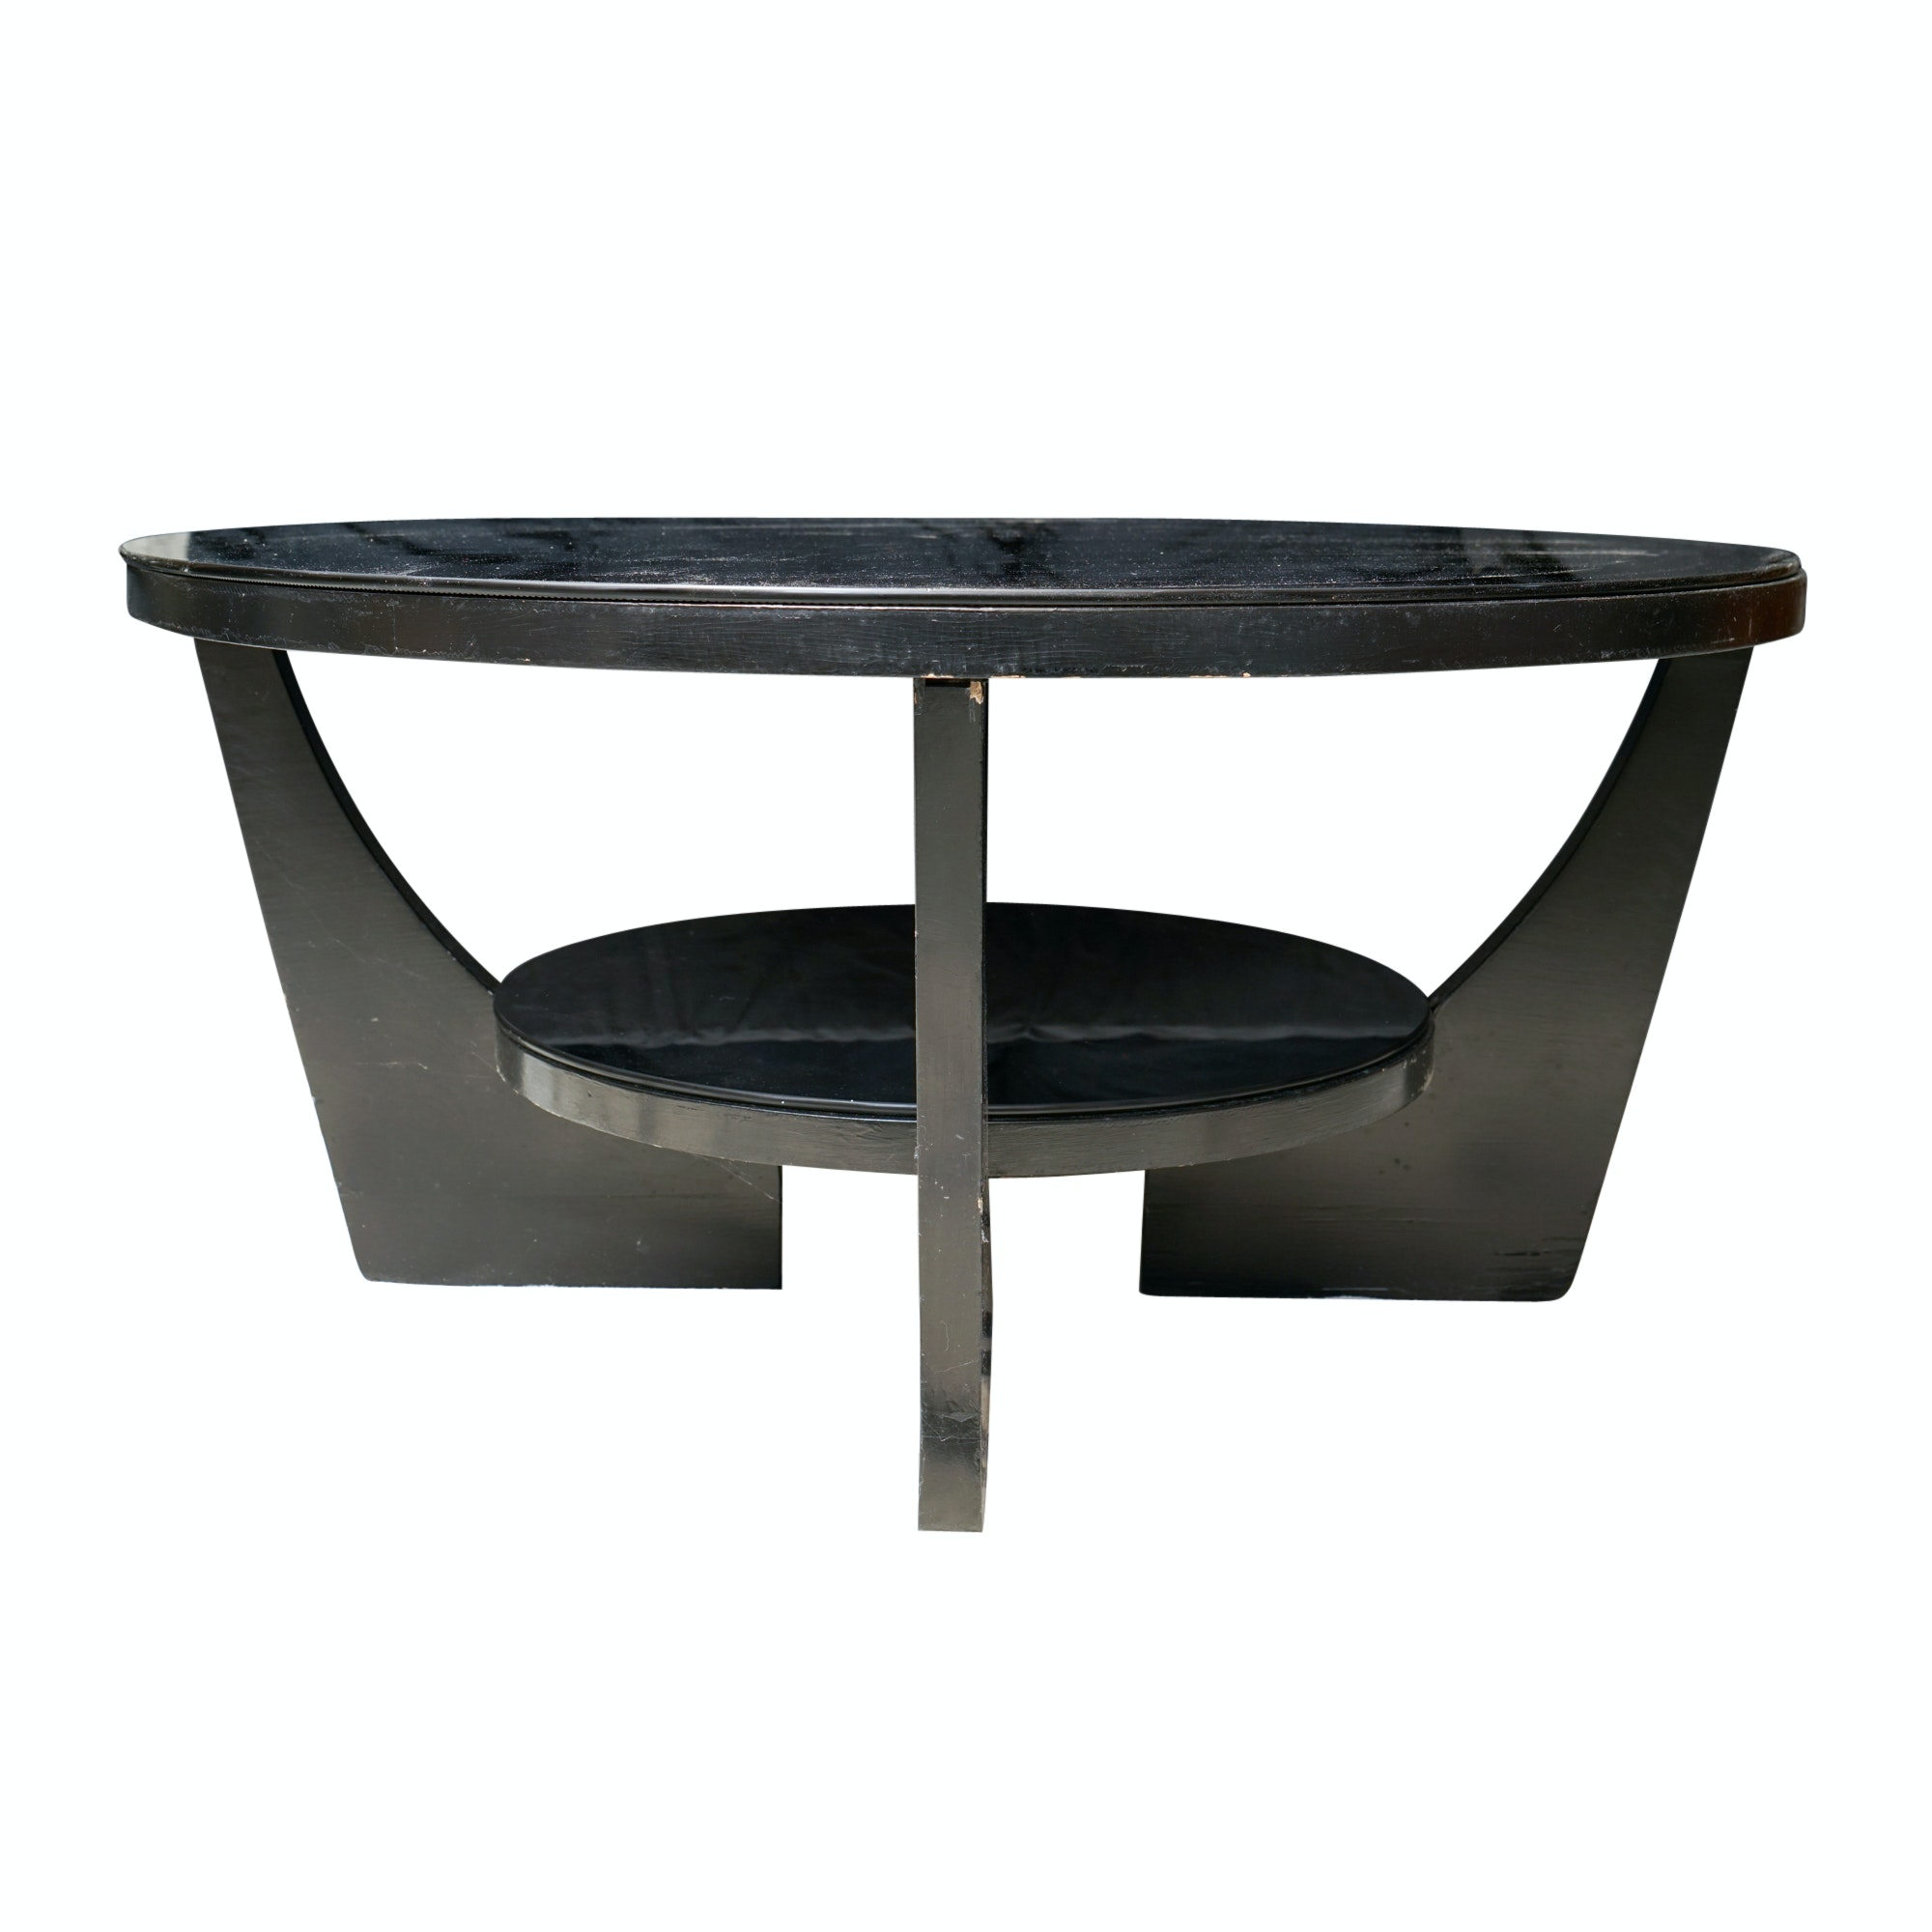 Contemporary Art Deco Style Coffee Table